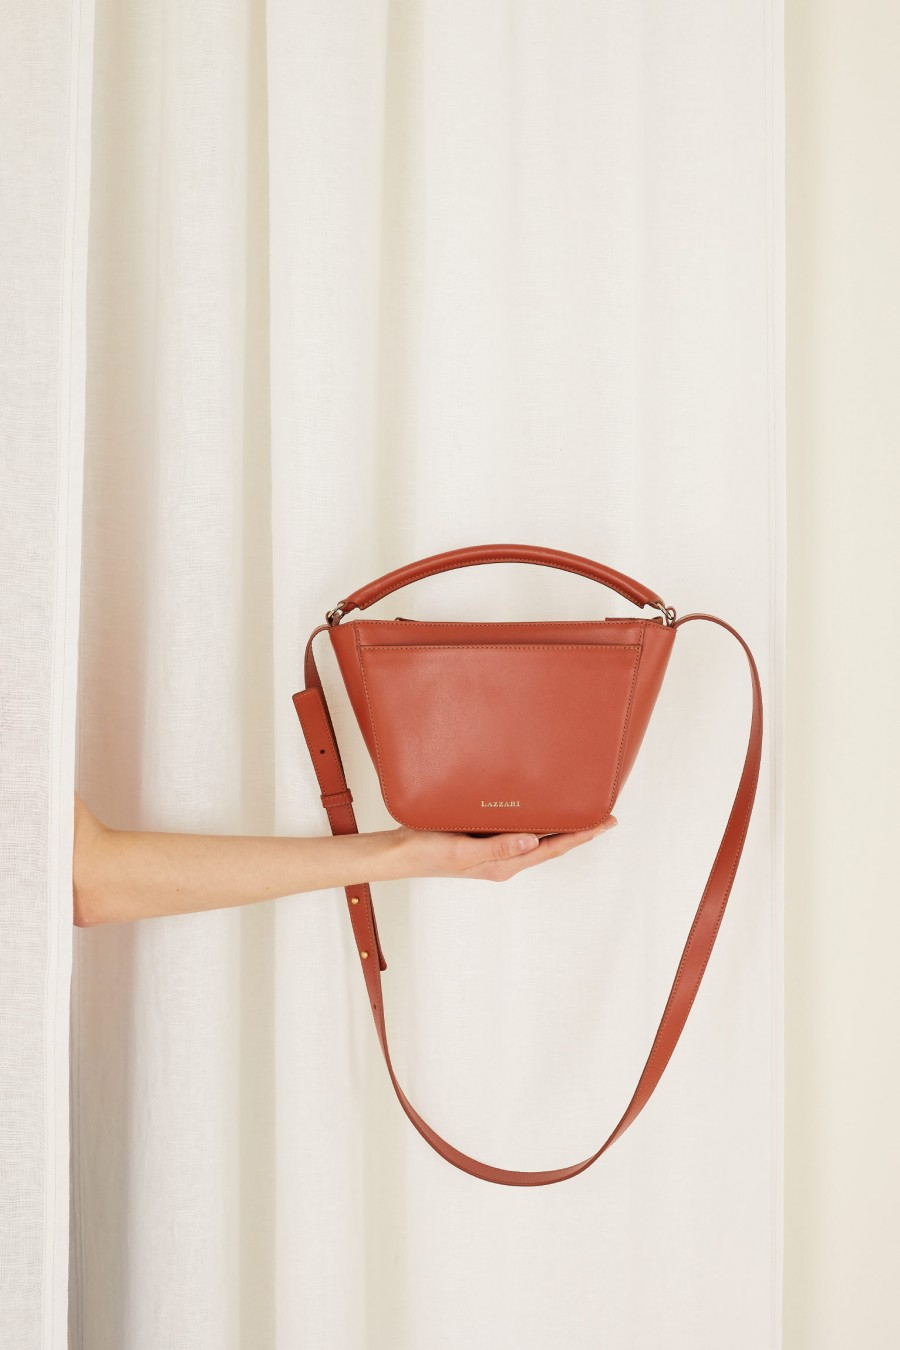 top quality trapeze bag with handle